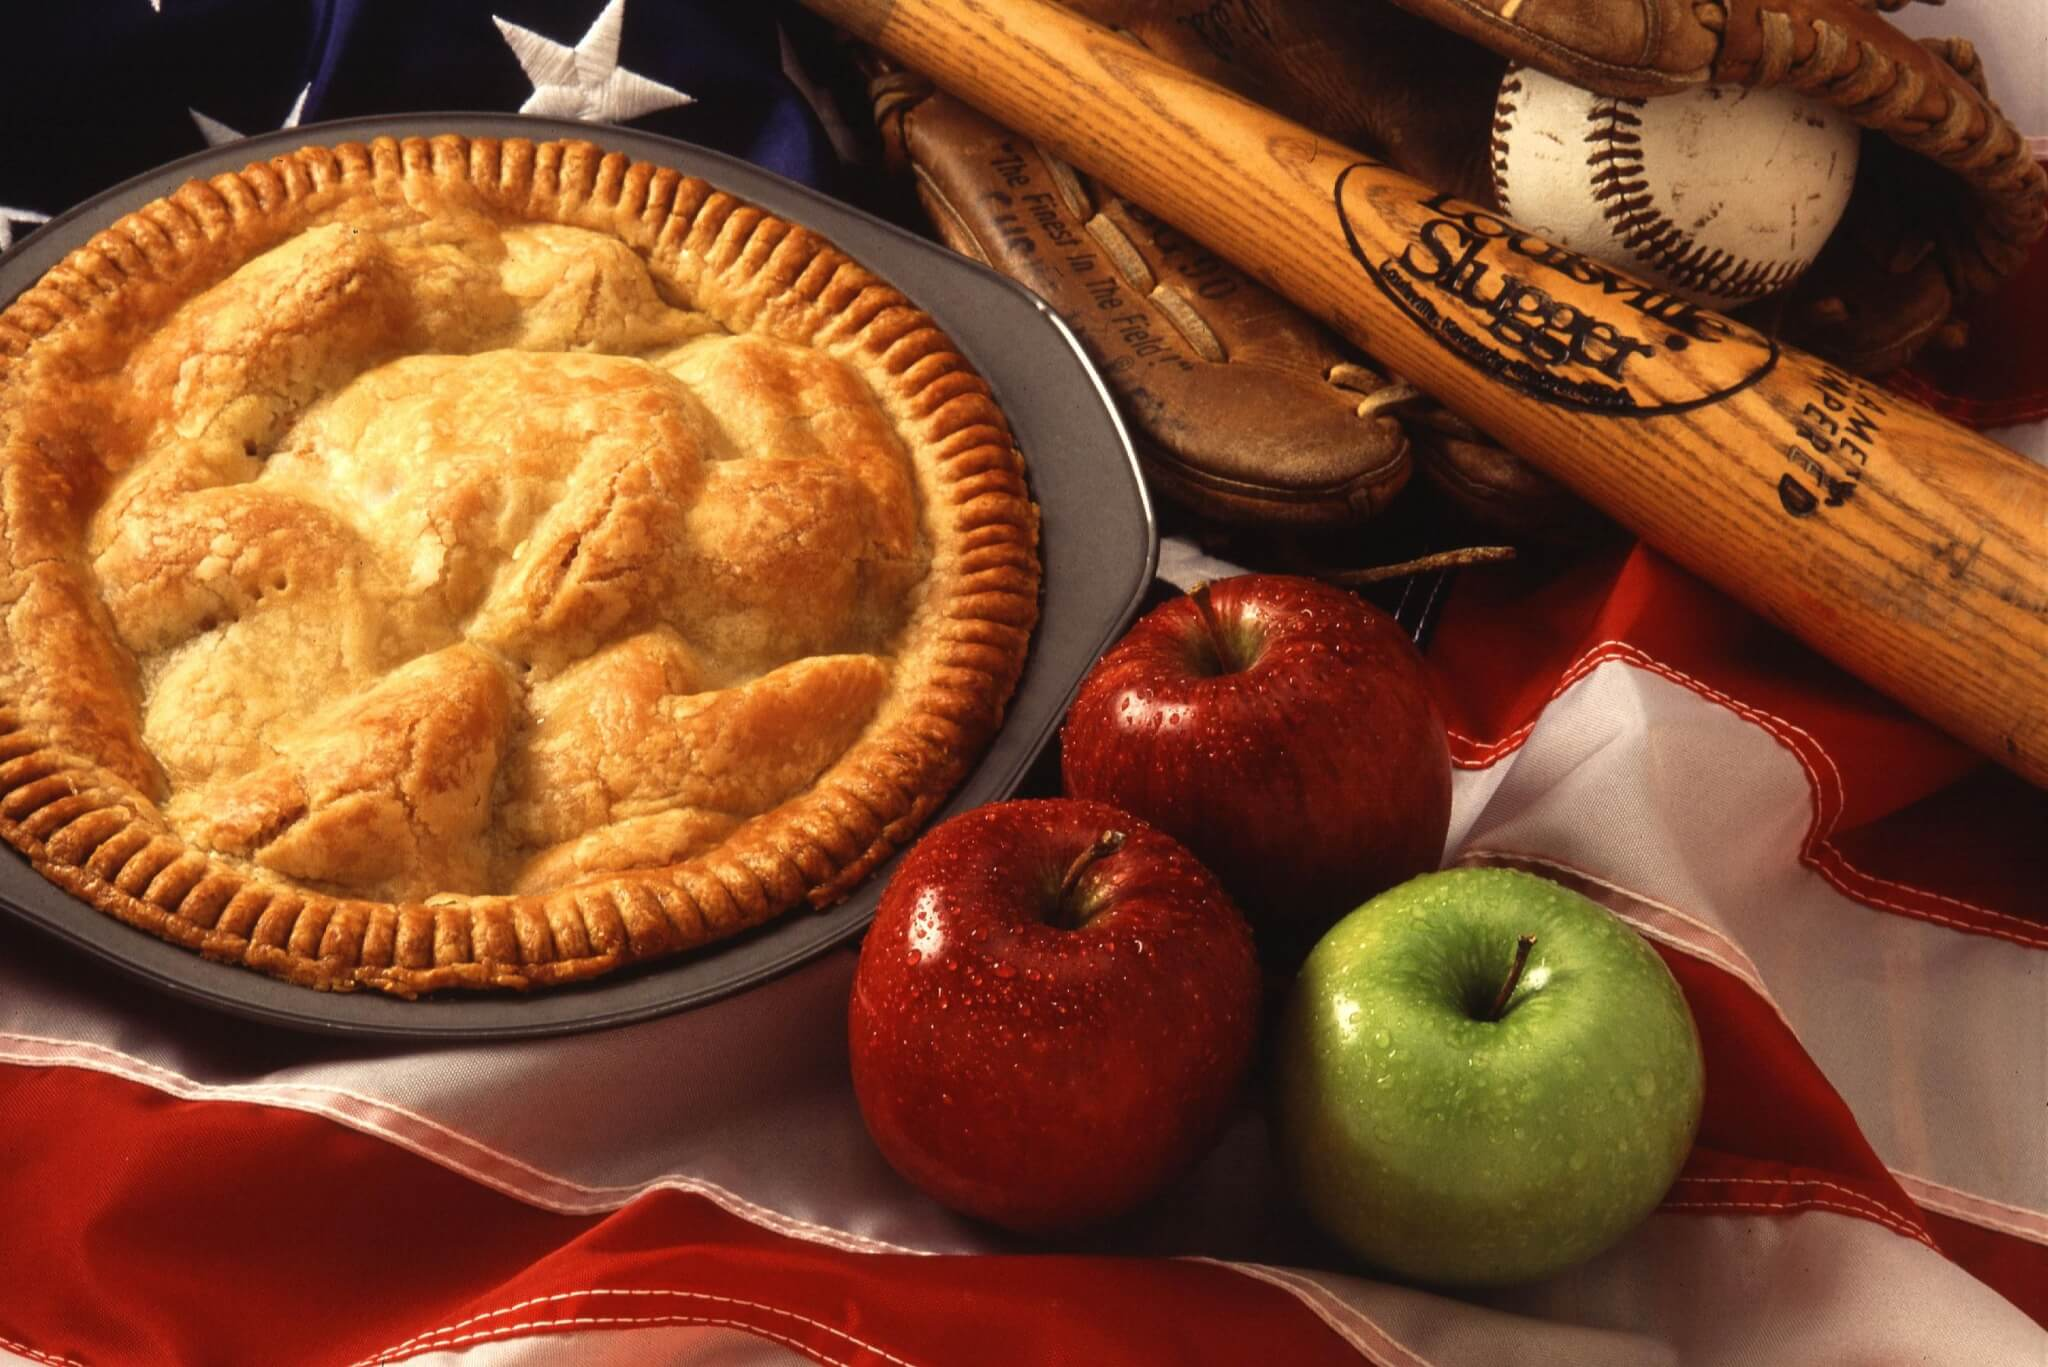 Apple Pie - perfect for Pi Day.